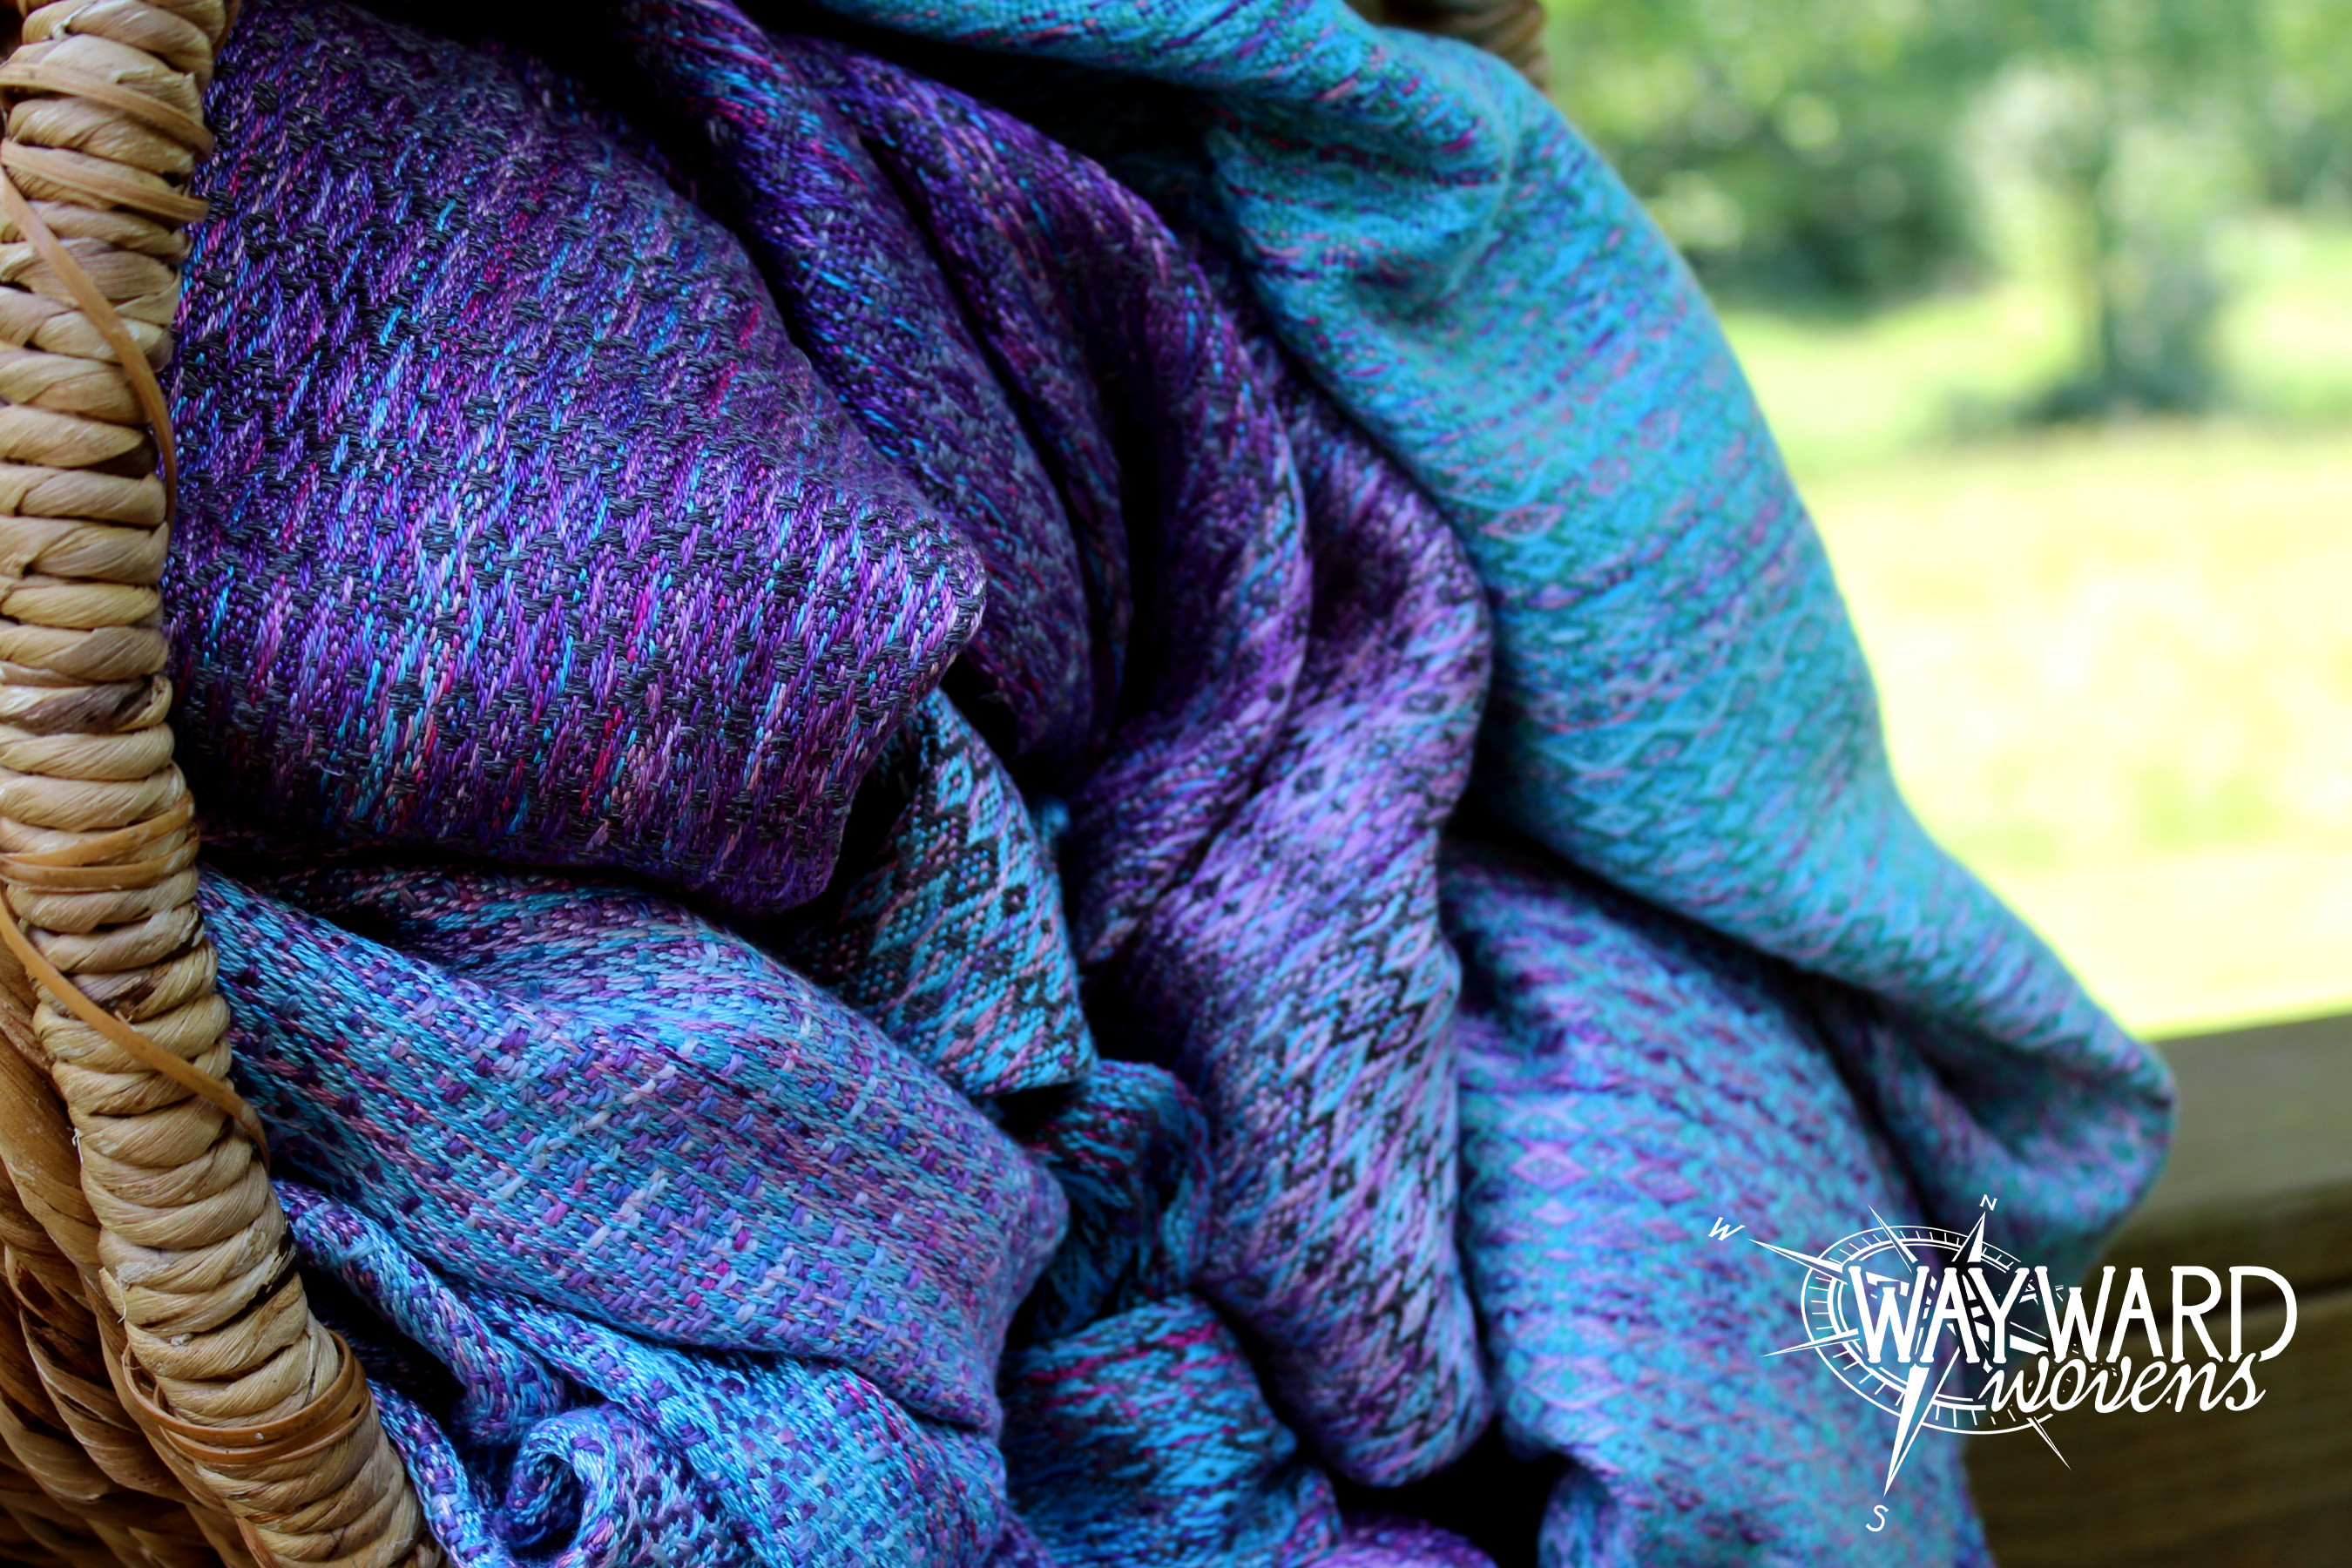 Woven wrap sisters